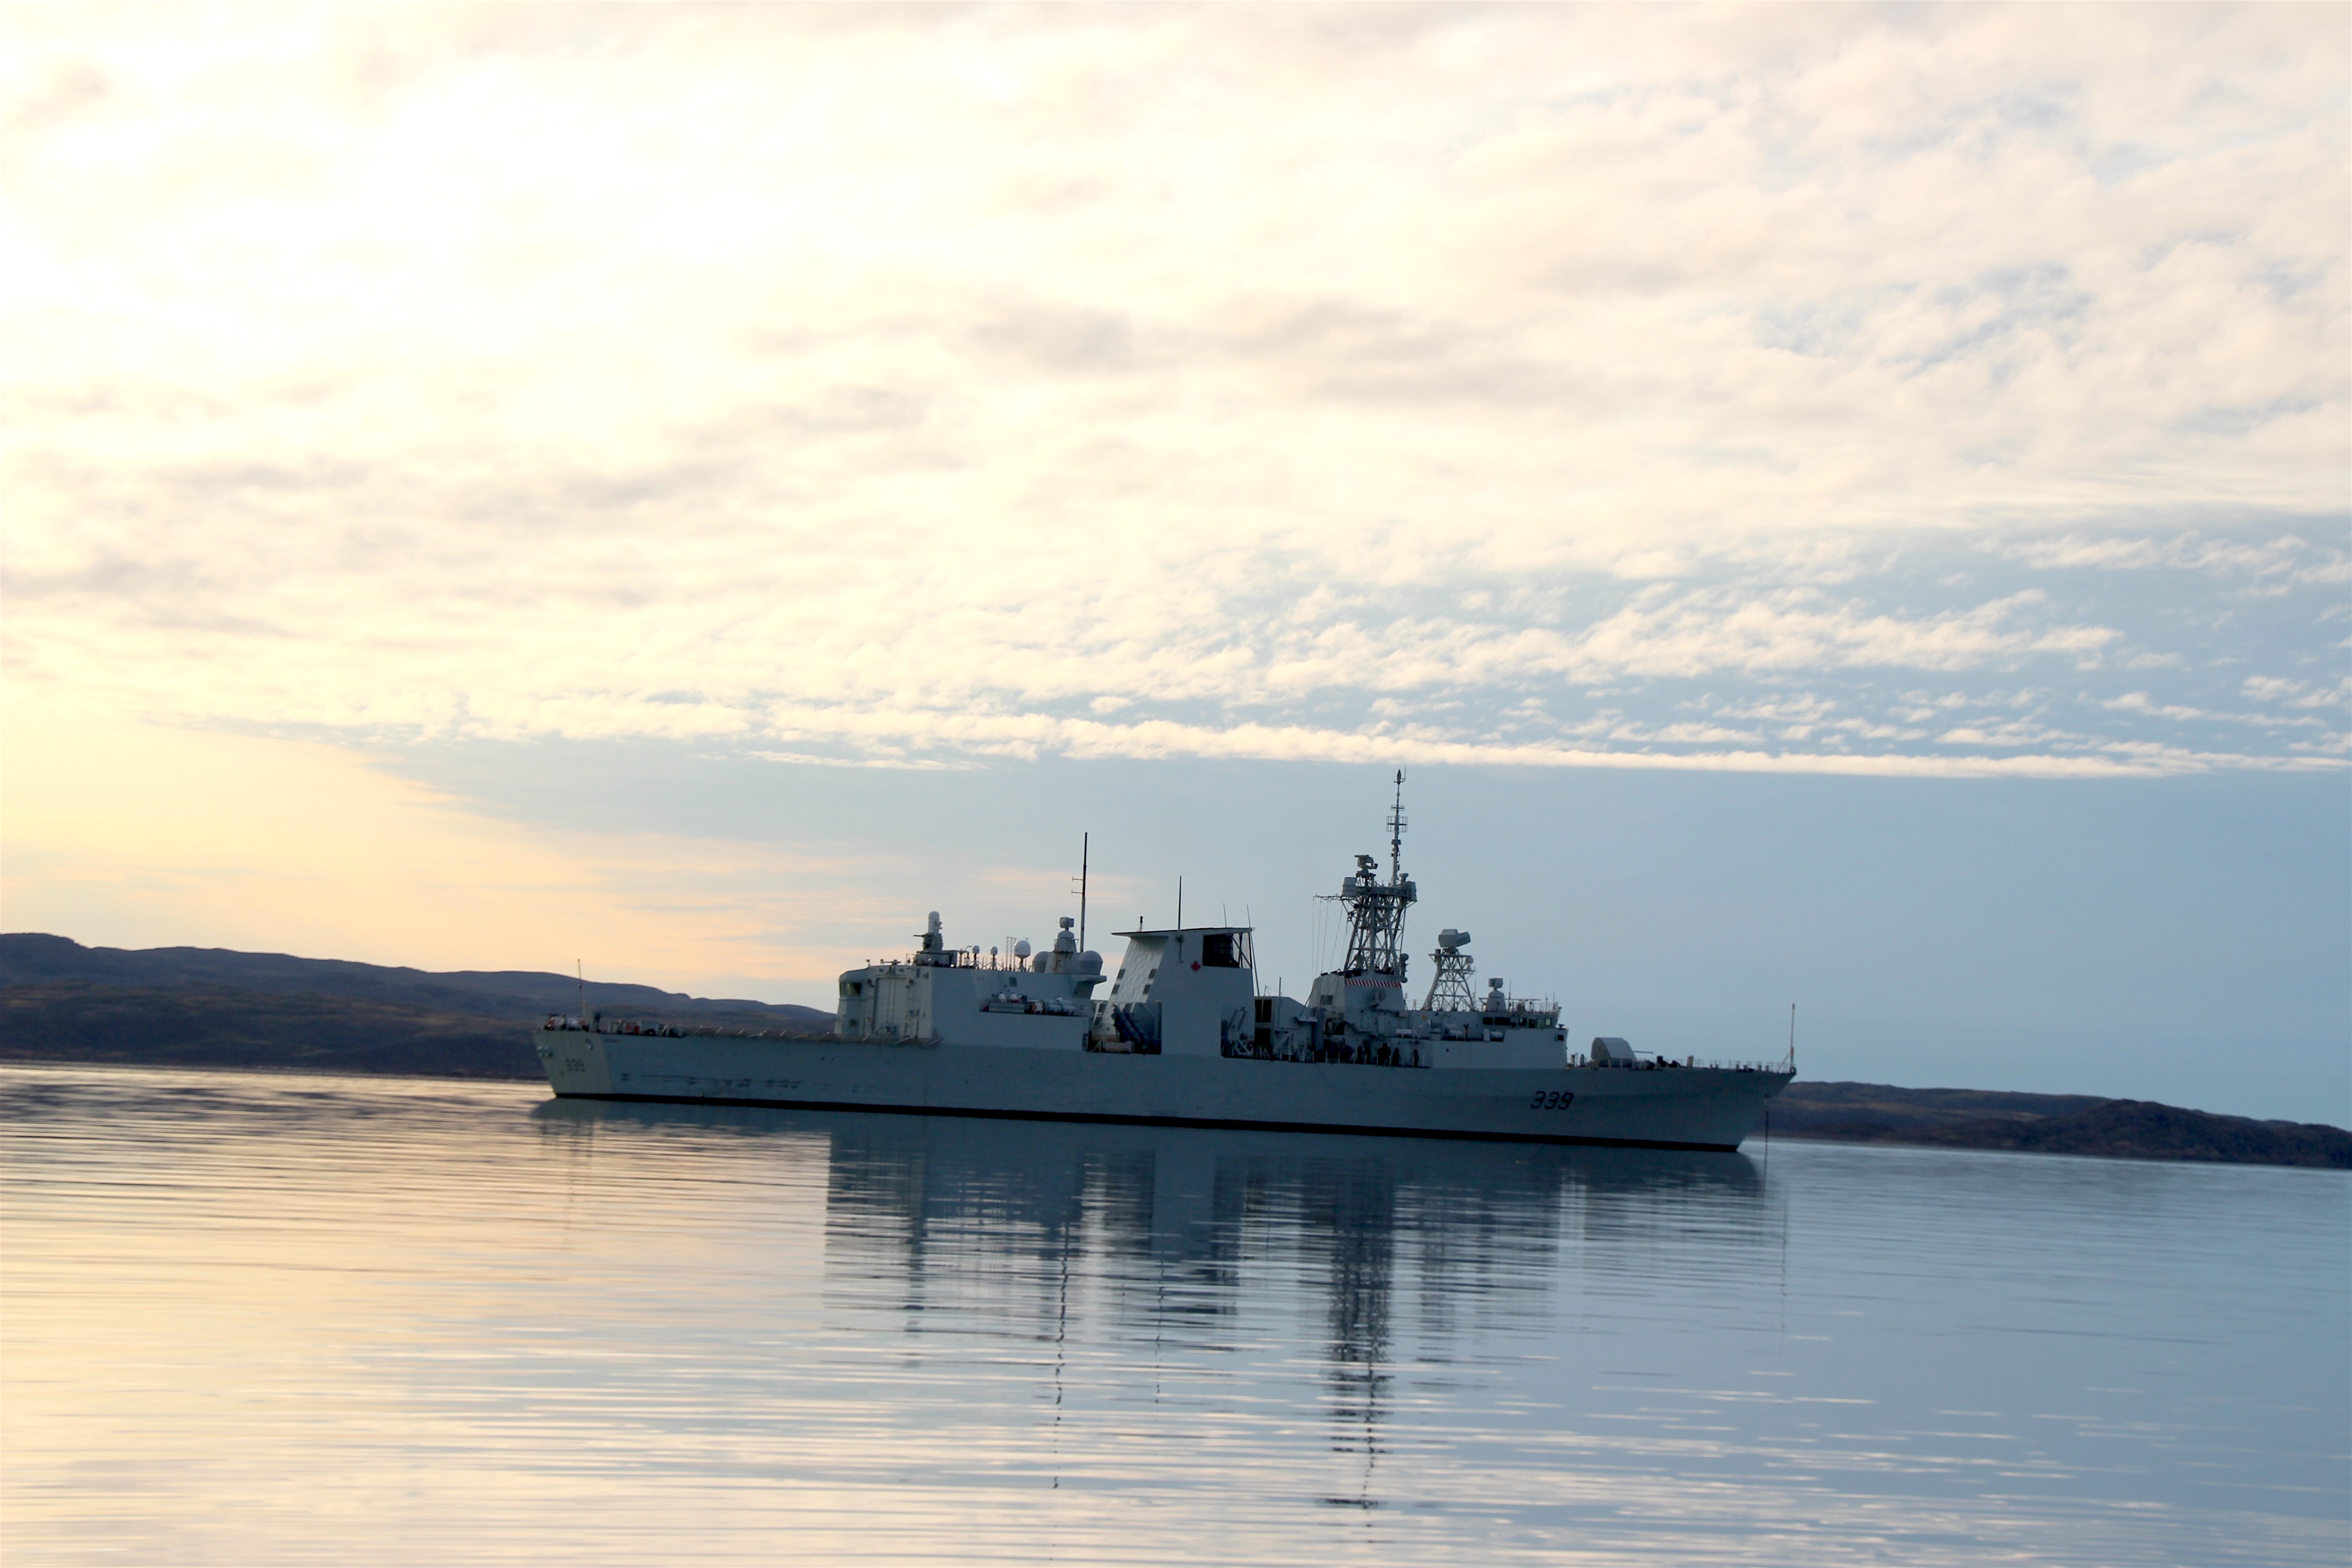 HMCS Charlottetown anchors in Frobisher Bay on Aug. 27. The Canadian warship is around 134 metres long and carries a crew of up to 200 sailors. The ship is just finishing taking part in an annual Arctic military exercise, Operation Nanook. (PHOTO BY BETH BROWN)